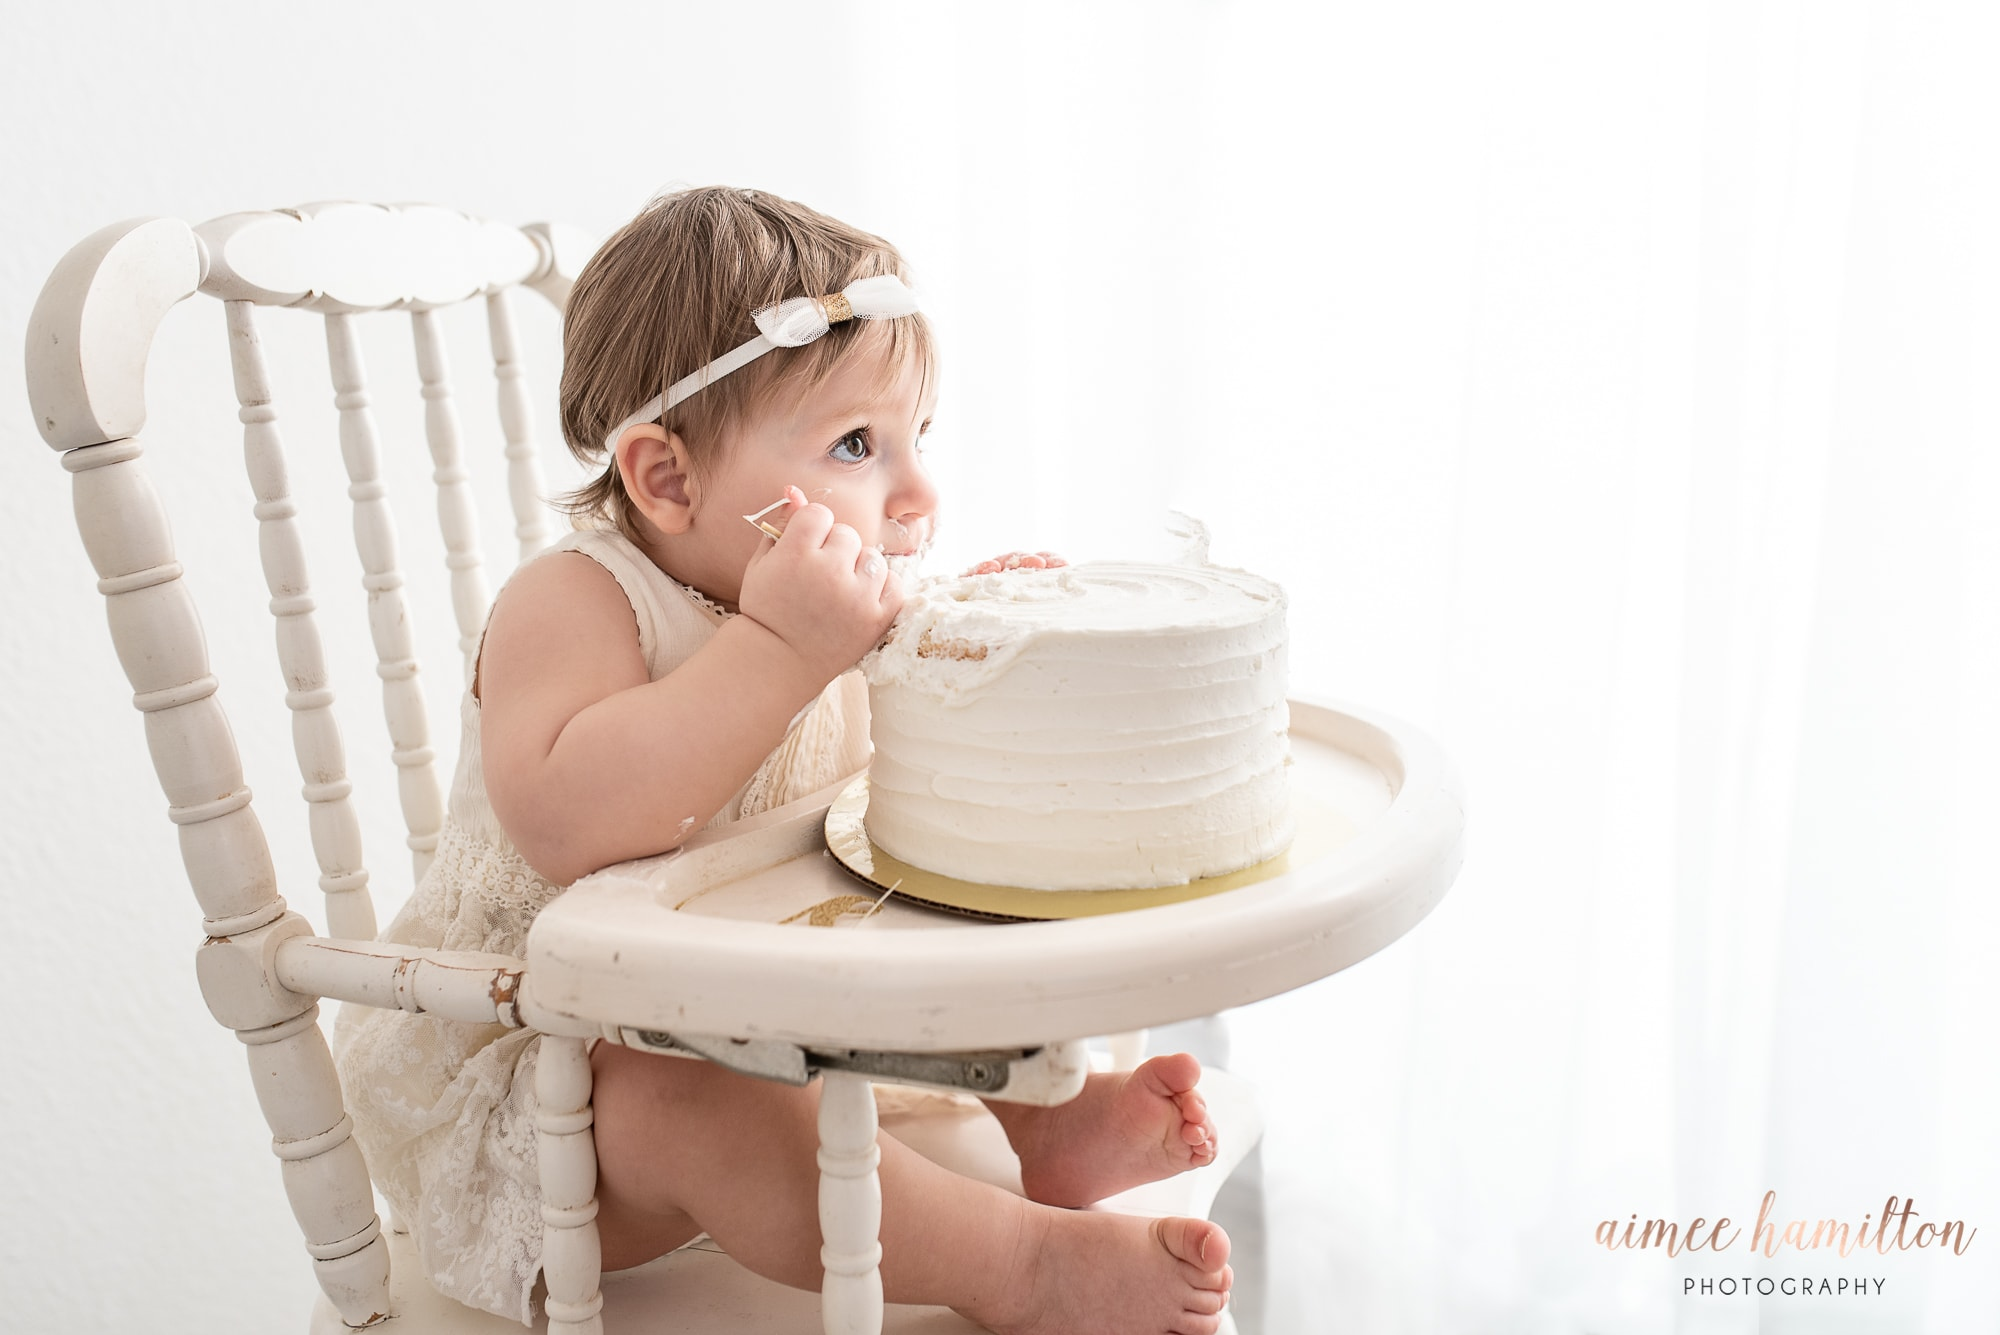 All White cake smash with a baby girl